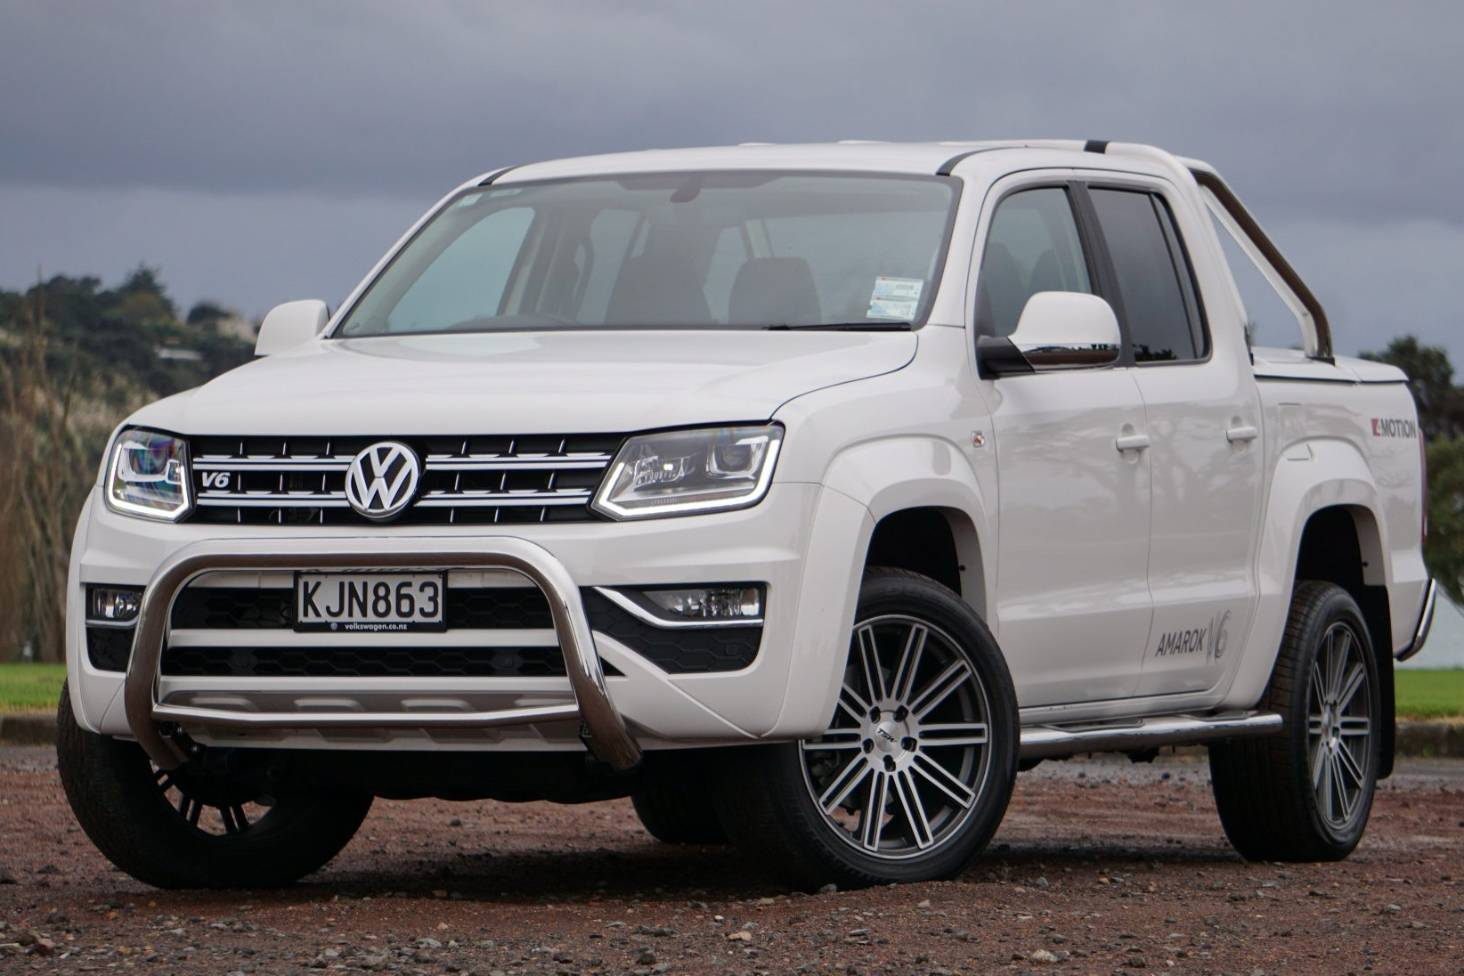 Why The Volkswagen Amarok V6 Is Our Top Pickup Truck Of 2017 Stuff Co Nz